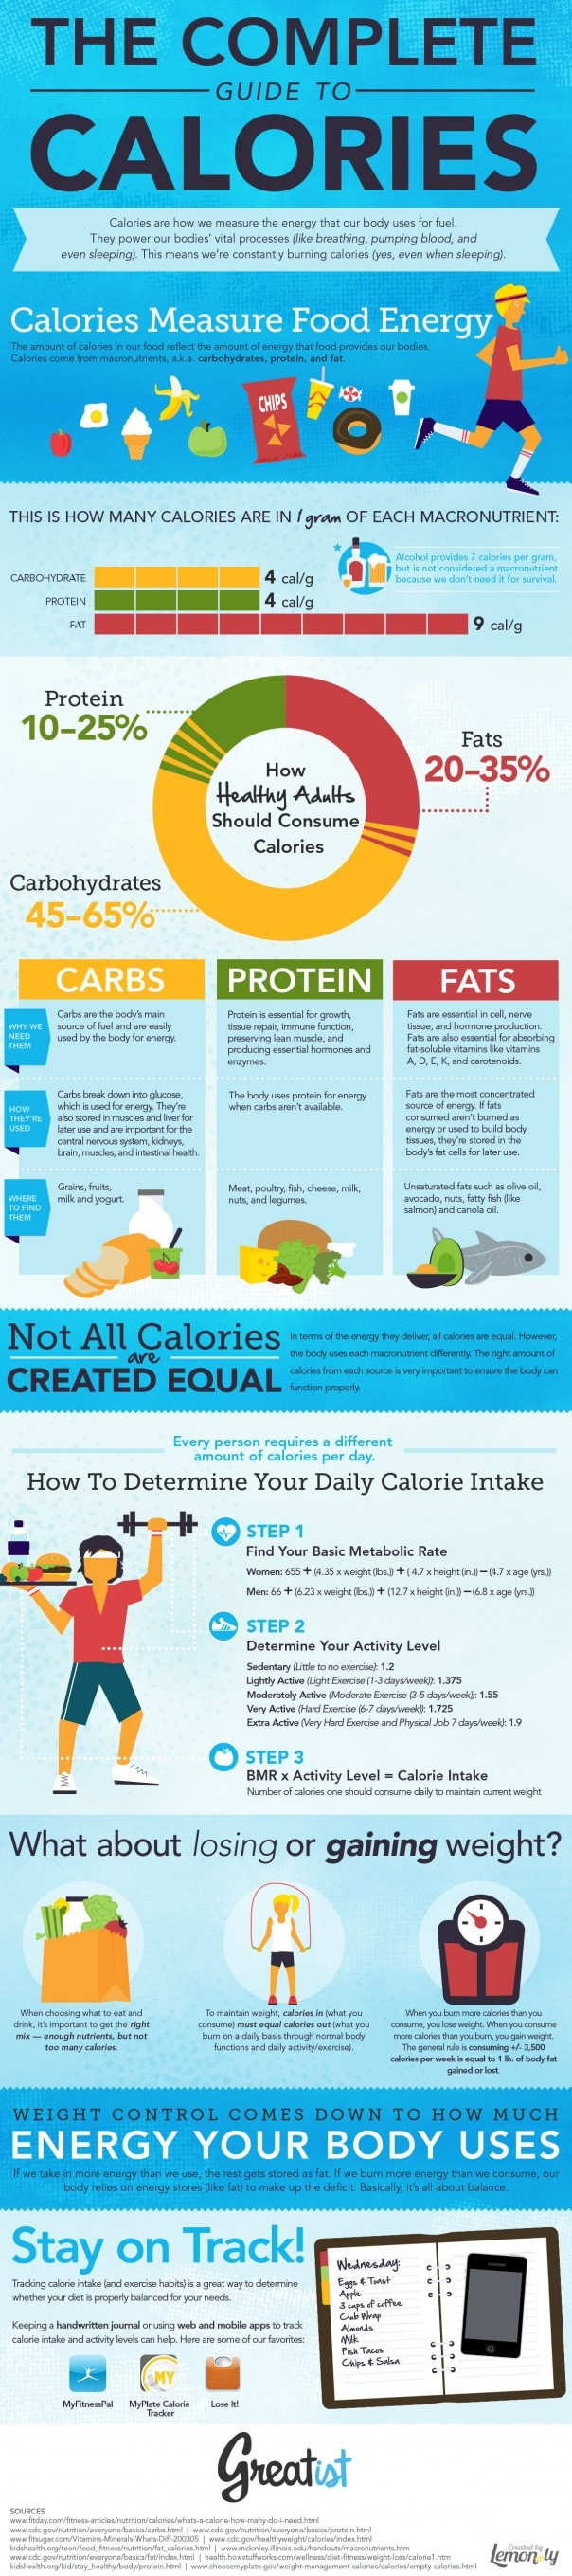 82 best health and wellbeing images on pinterest health healthy the complete guide to calories fandeluxe Choice Image